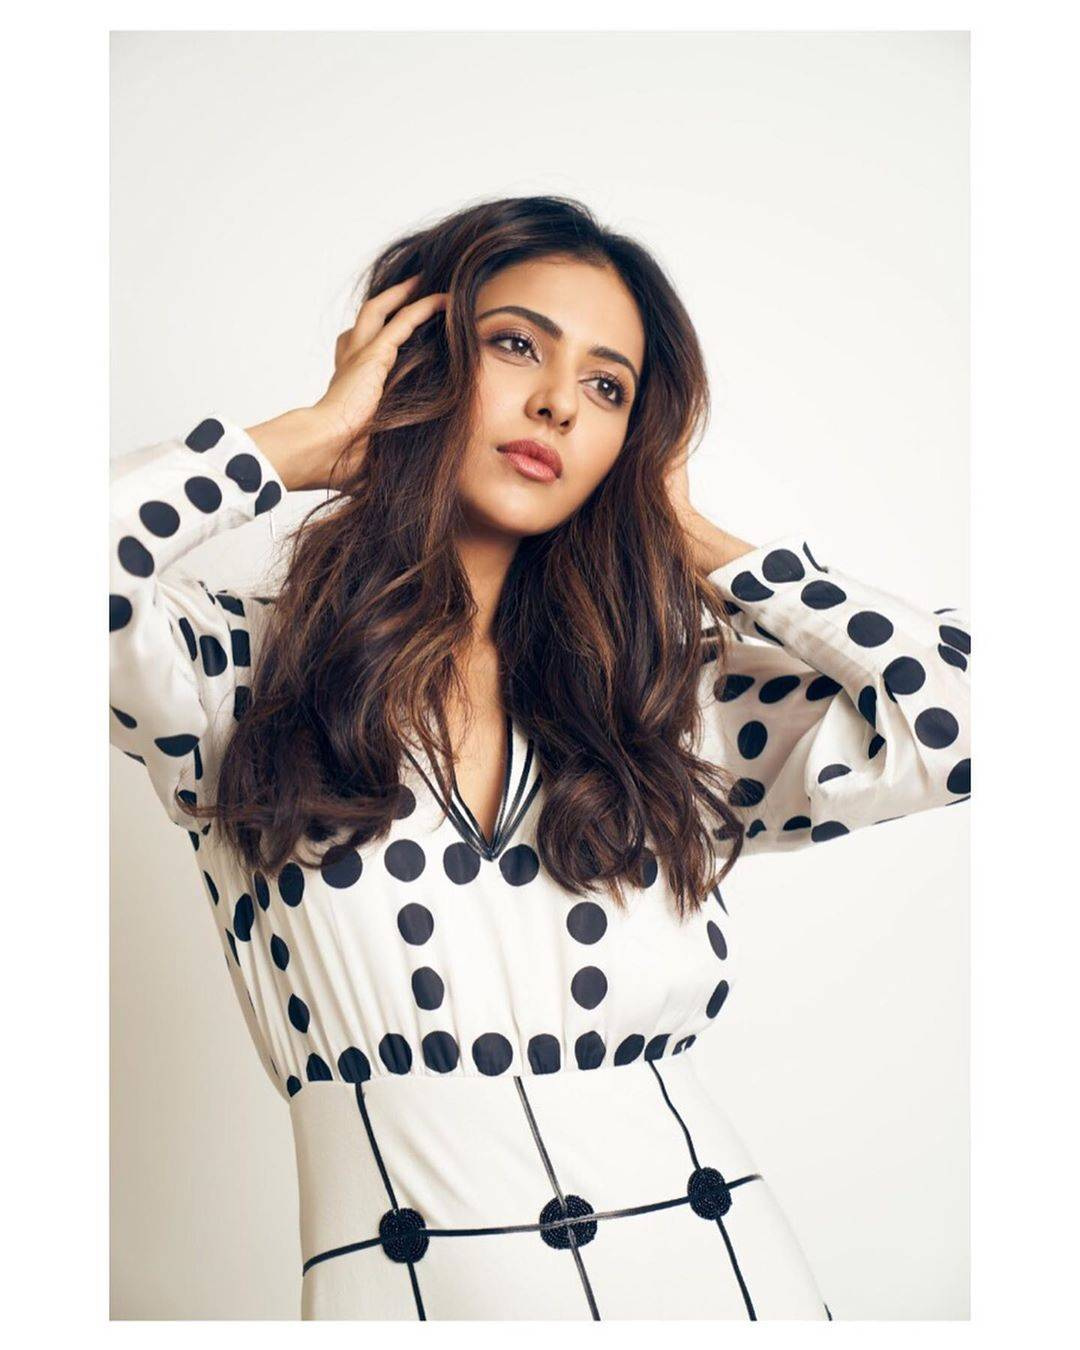 We'd have gone for a high pony and oversized shades for this outfit, but make-up artist Chakravarthi Kadali and Hairstylist Tina Mukharjee kept it very mainstream with a simple-face look and teased out voluminous hair. - Fashion Models